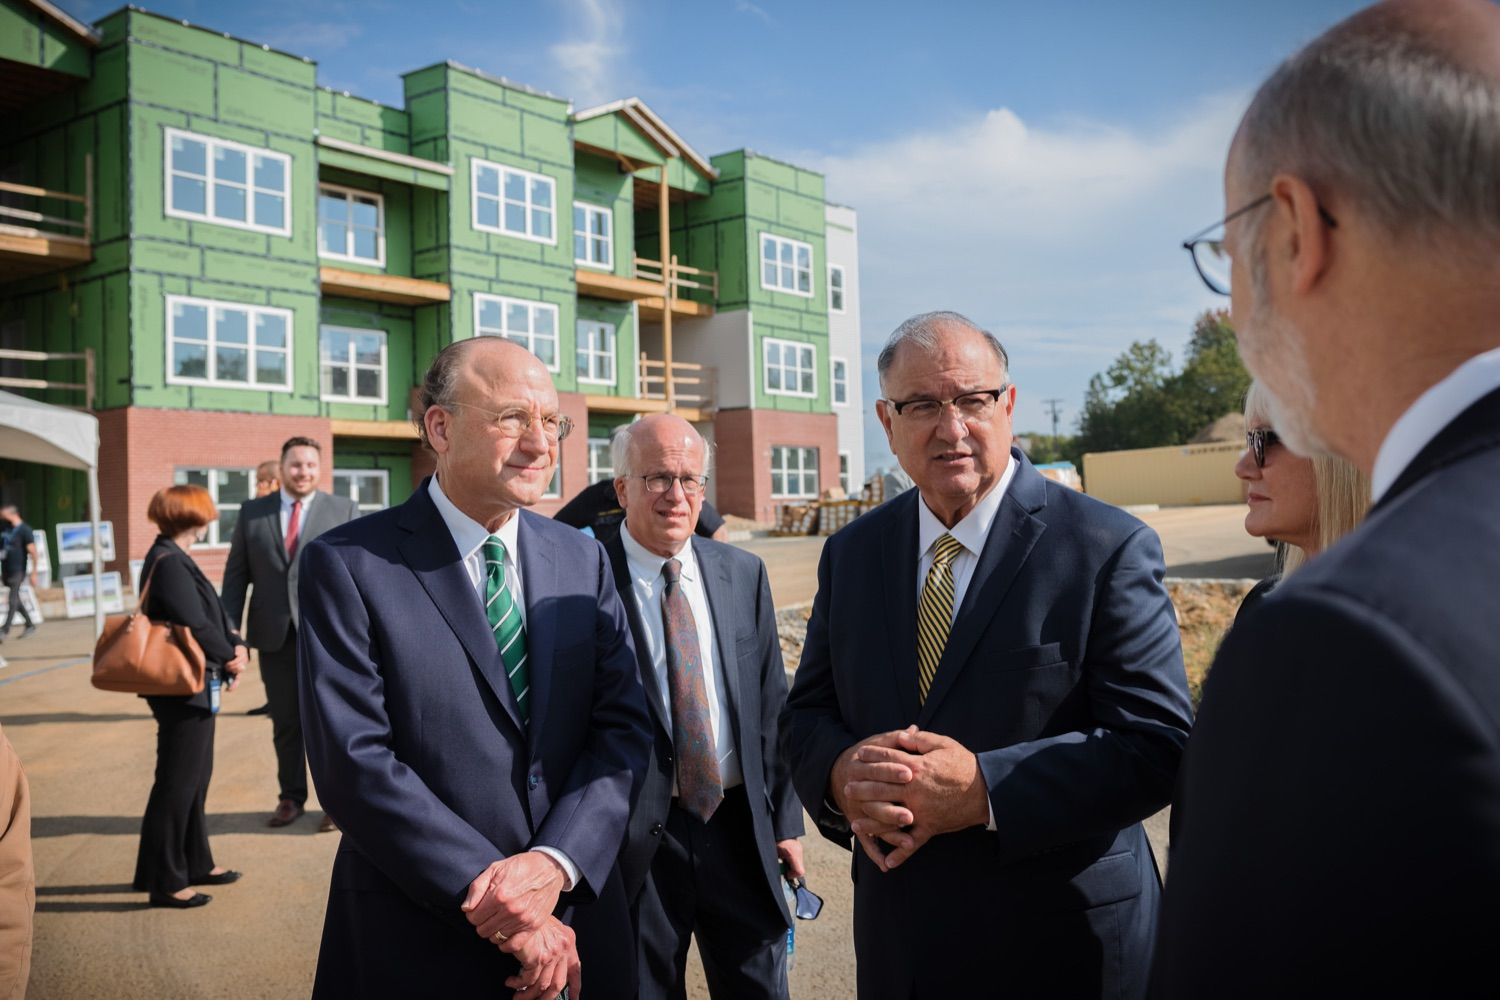 """<a href=""""https://filesource.wostreaming.net/commonwealthofpa/photo/20125_gov_economicDevelopment_dz_006.jpg"""" target=""""_blank"""">⇣Download Photo<br></a>Governor Tom Wolf touring the site of the Mill at Easton. Governor Tom Wolf today visited the City of Easton to highlight millions of dollars in state investments in several economic development projects that are revitalizing formerly vacant and blighted properties.  Easton, PA   October 8, 2021."""